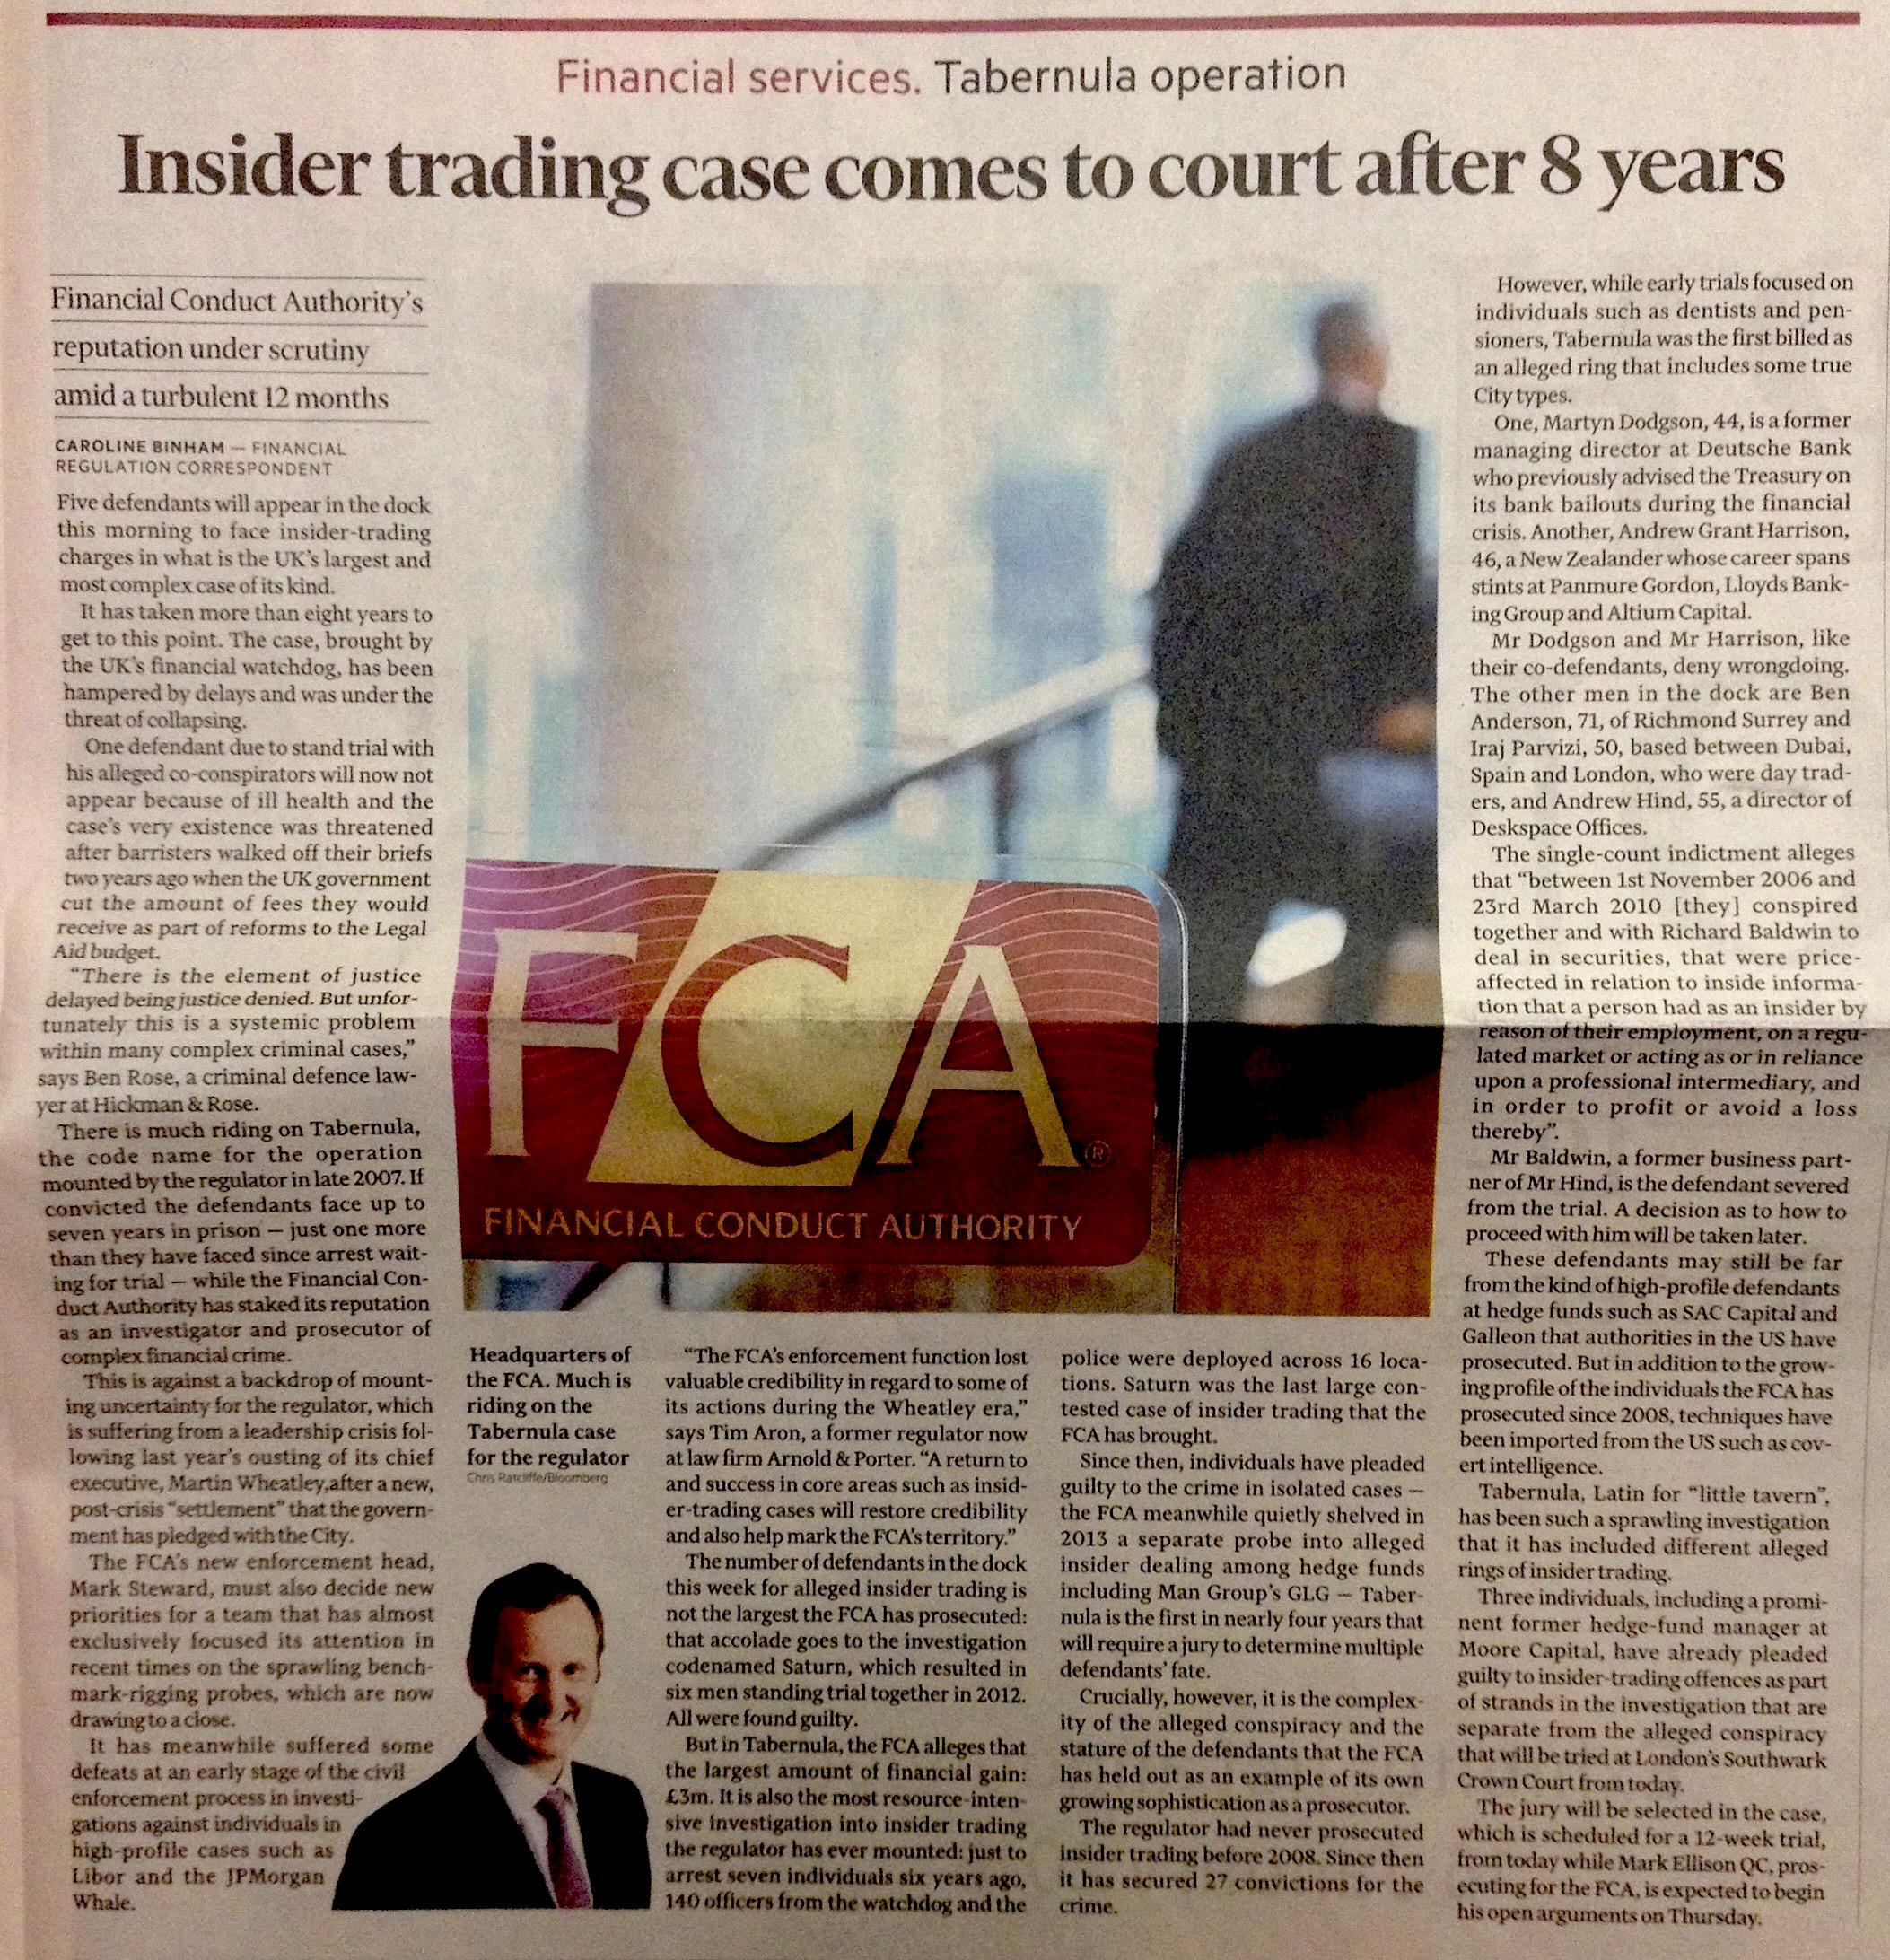 What the FT Insider trading